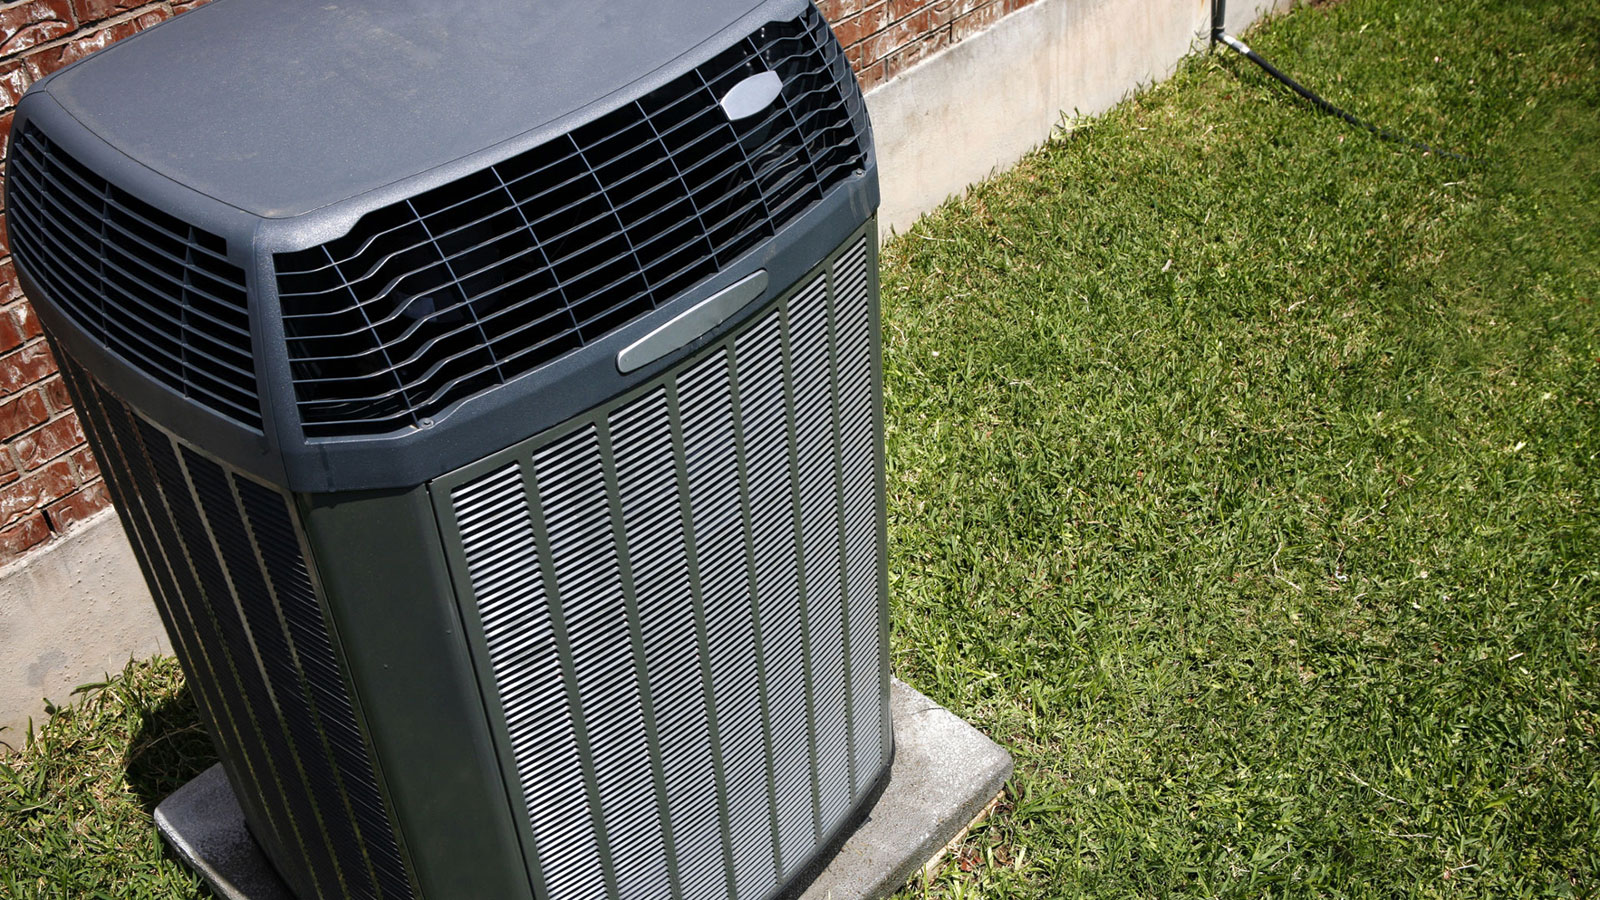 Warner Robins Macon Niceville Heating and Air Conditioning